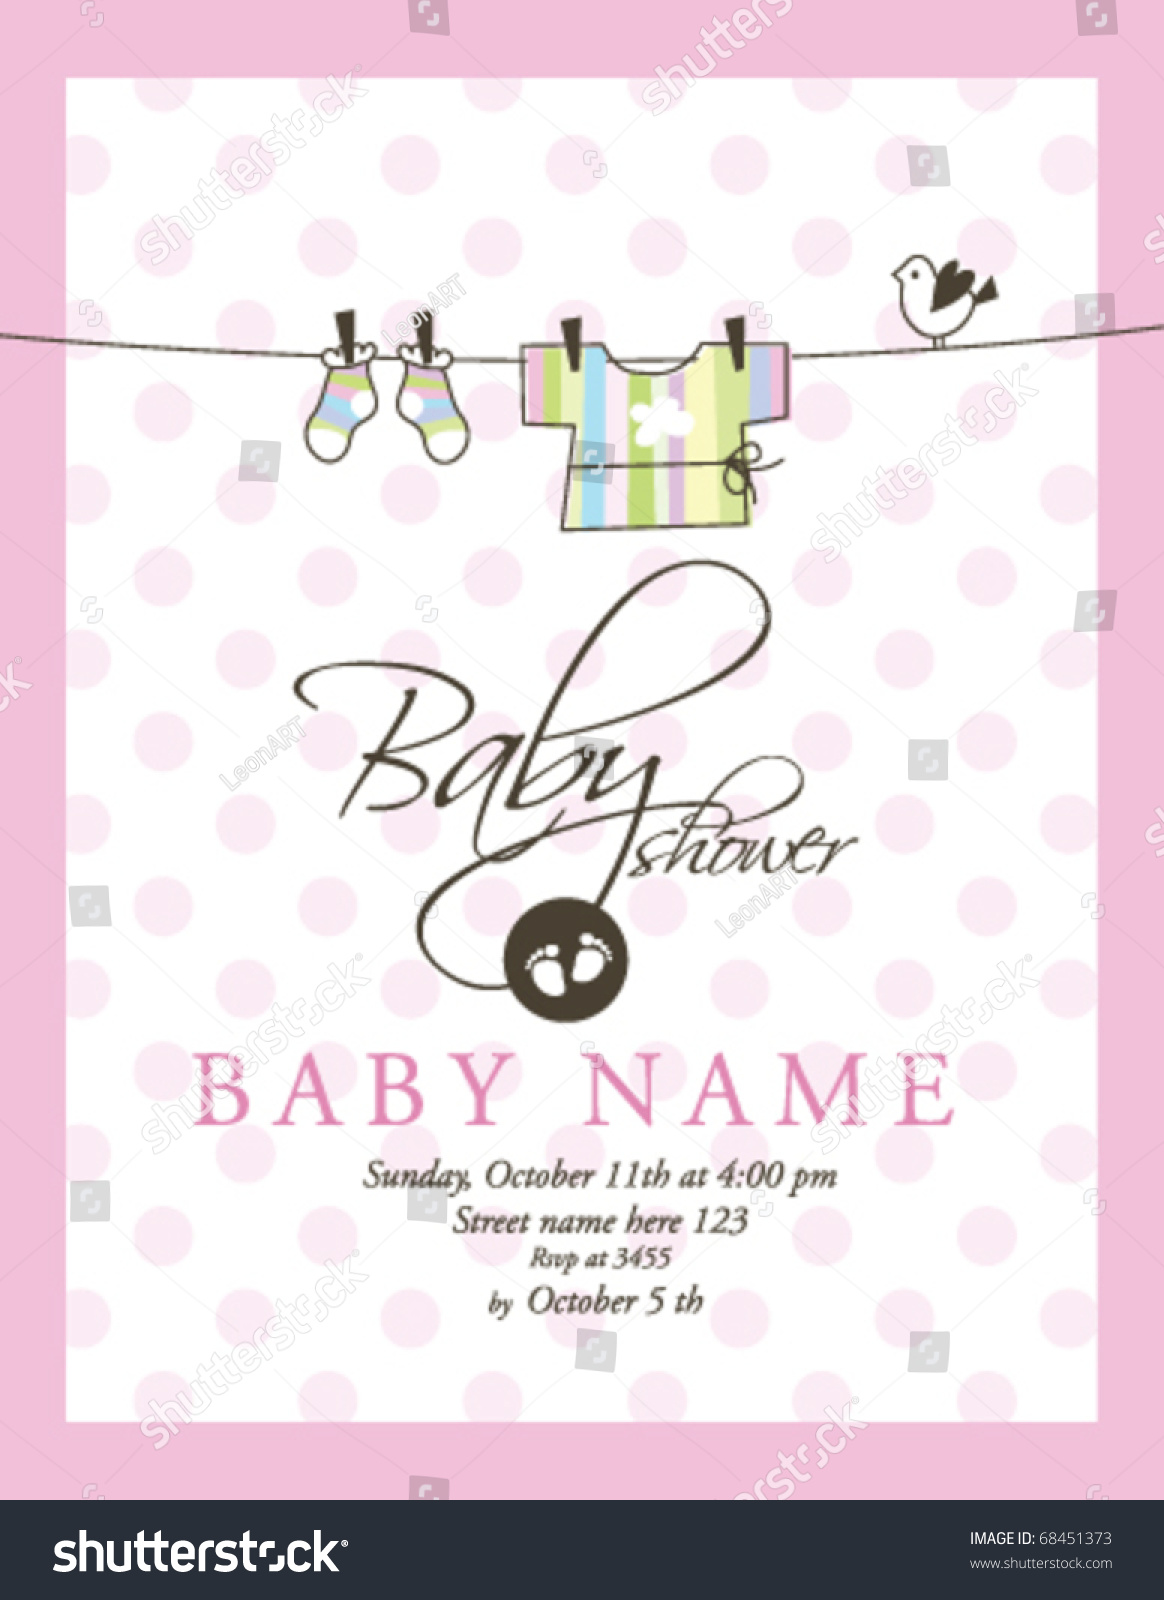 baby shower card template stock vector illustration 68451373